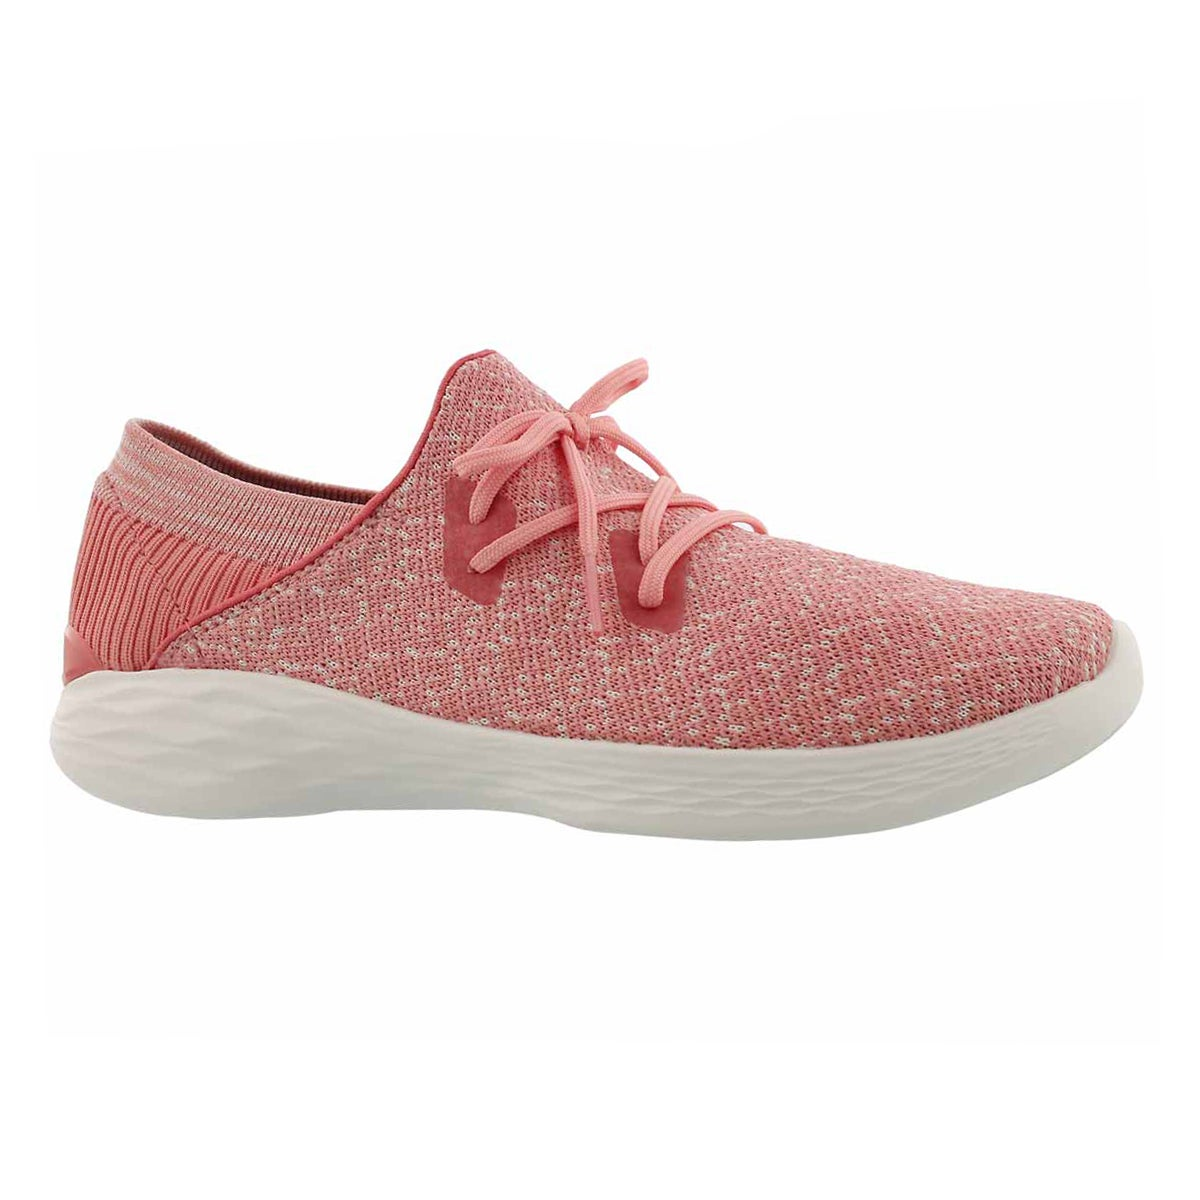 Women's YOU EXHALE pink slip on sneakers